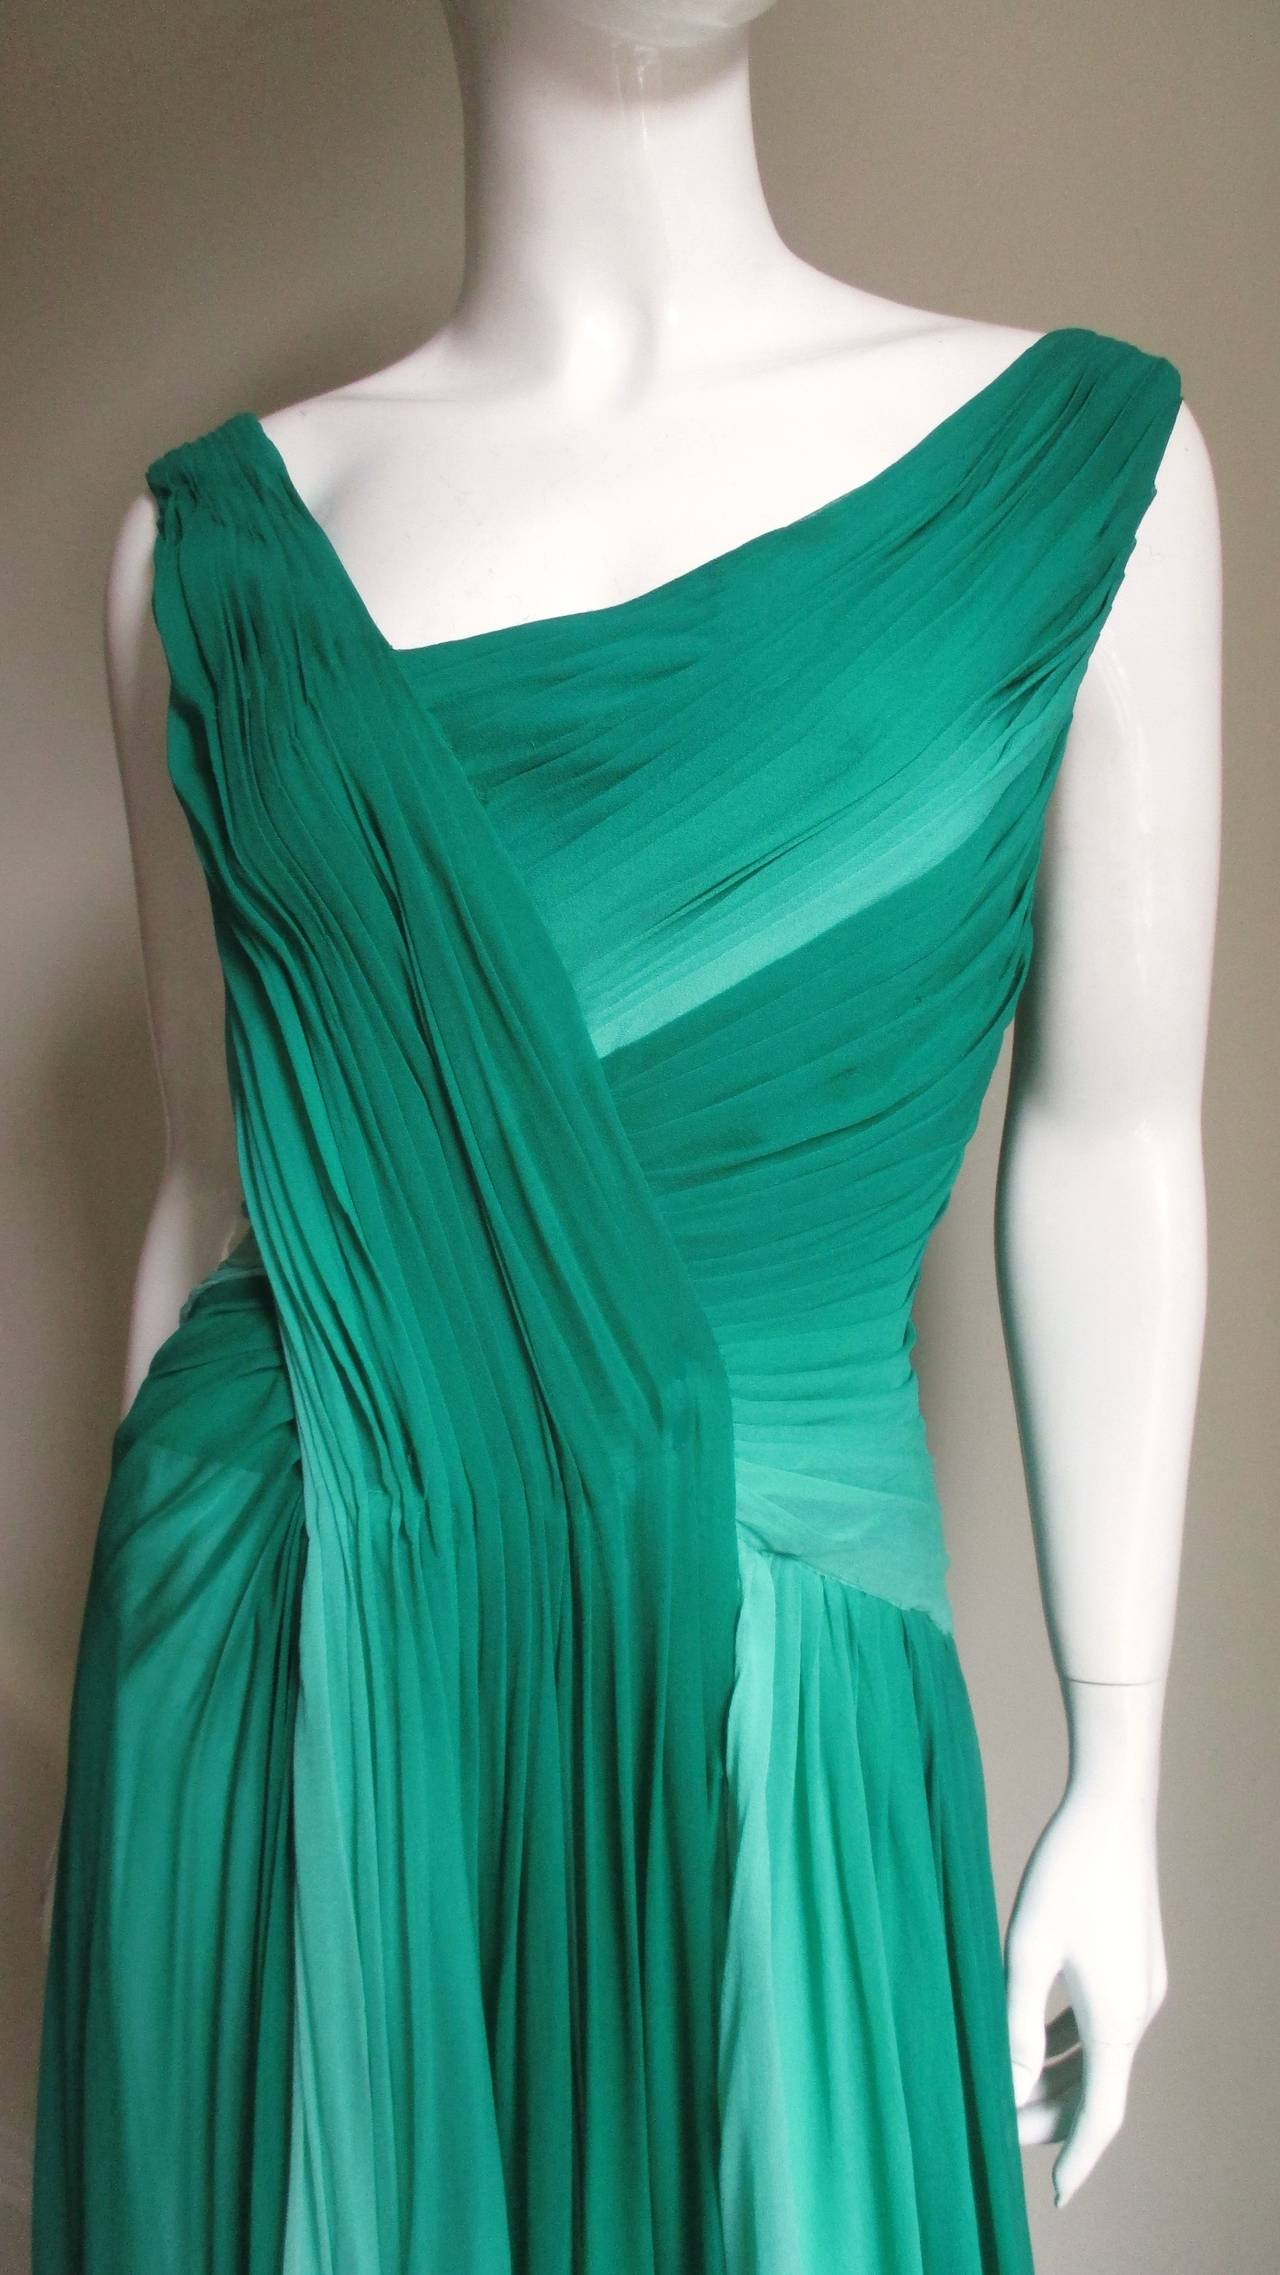 A fabulous gown from Monique Lhuillier in emerald green to off white ombre silk.  It has an asymmetric neckline crossing the front and back at different angles of pleating, one side going the length of the center front and forming a long shoulder